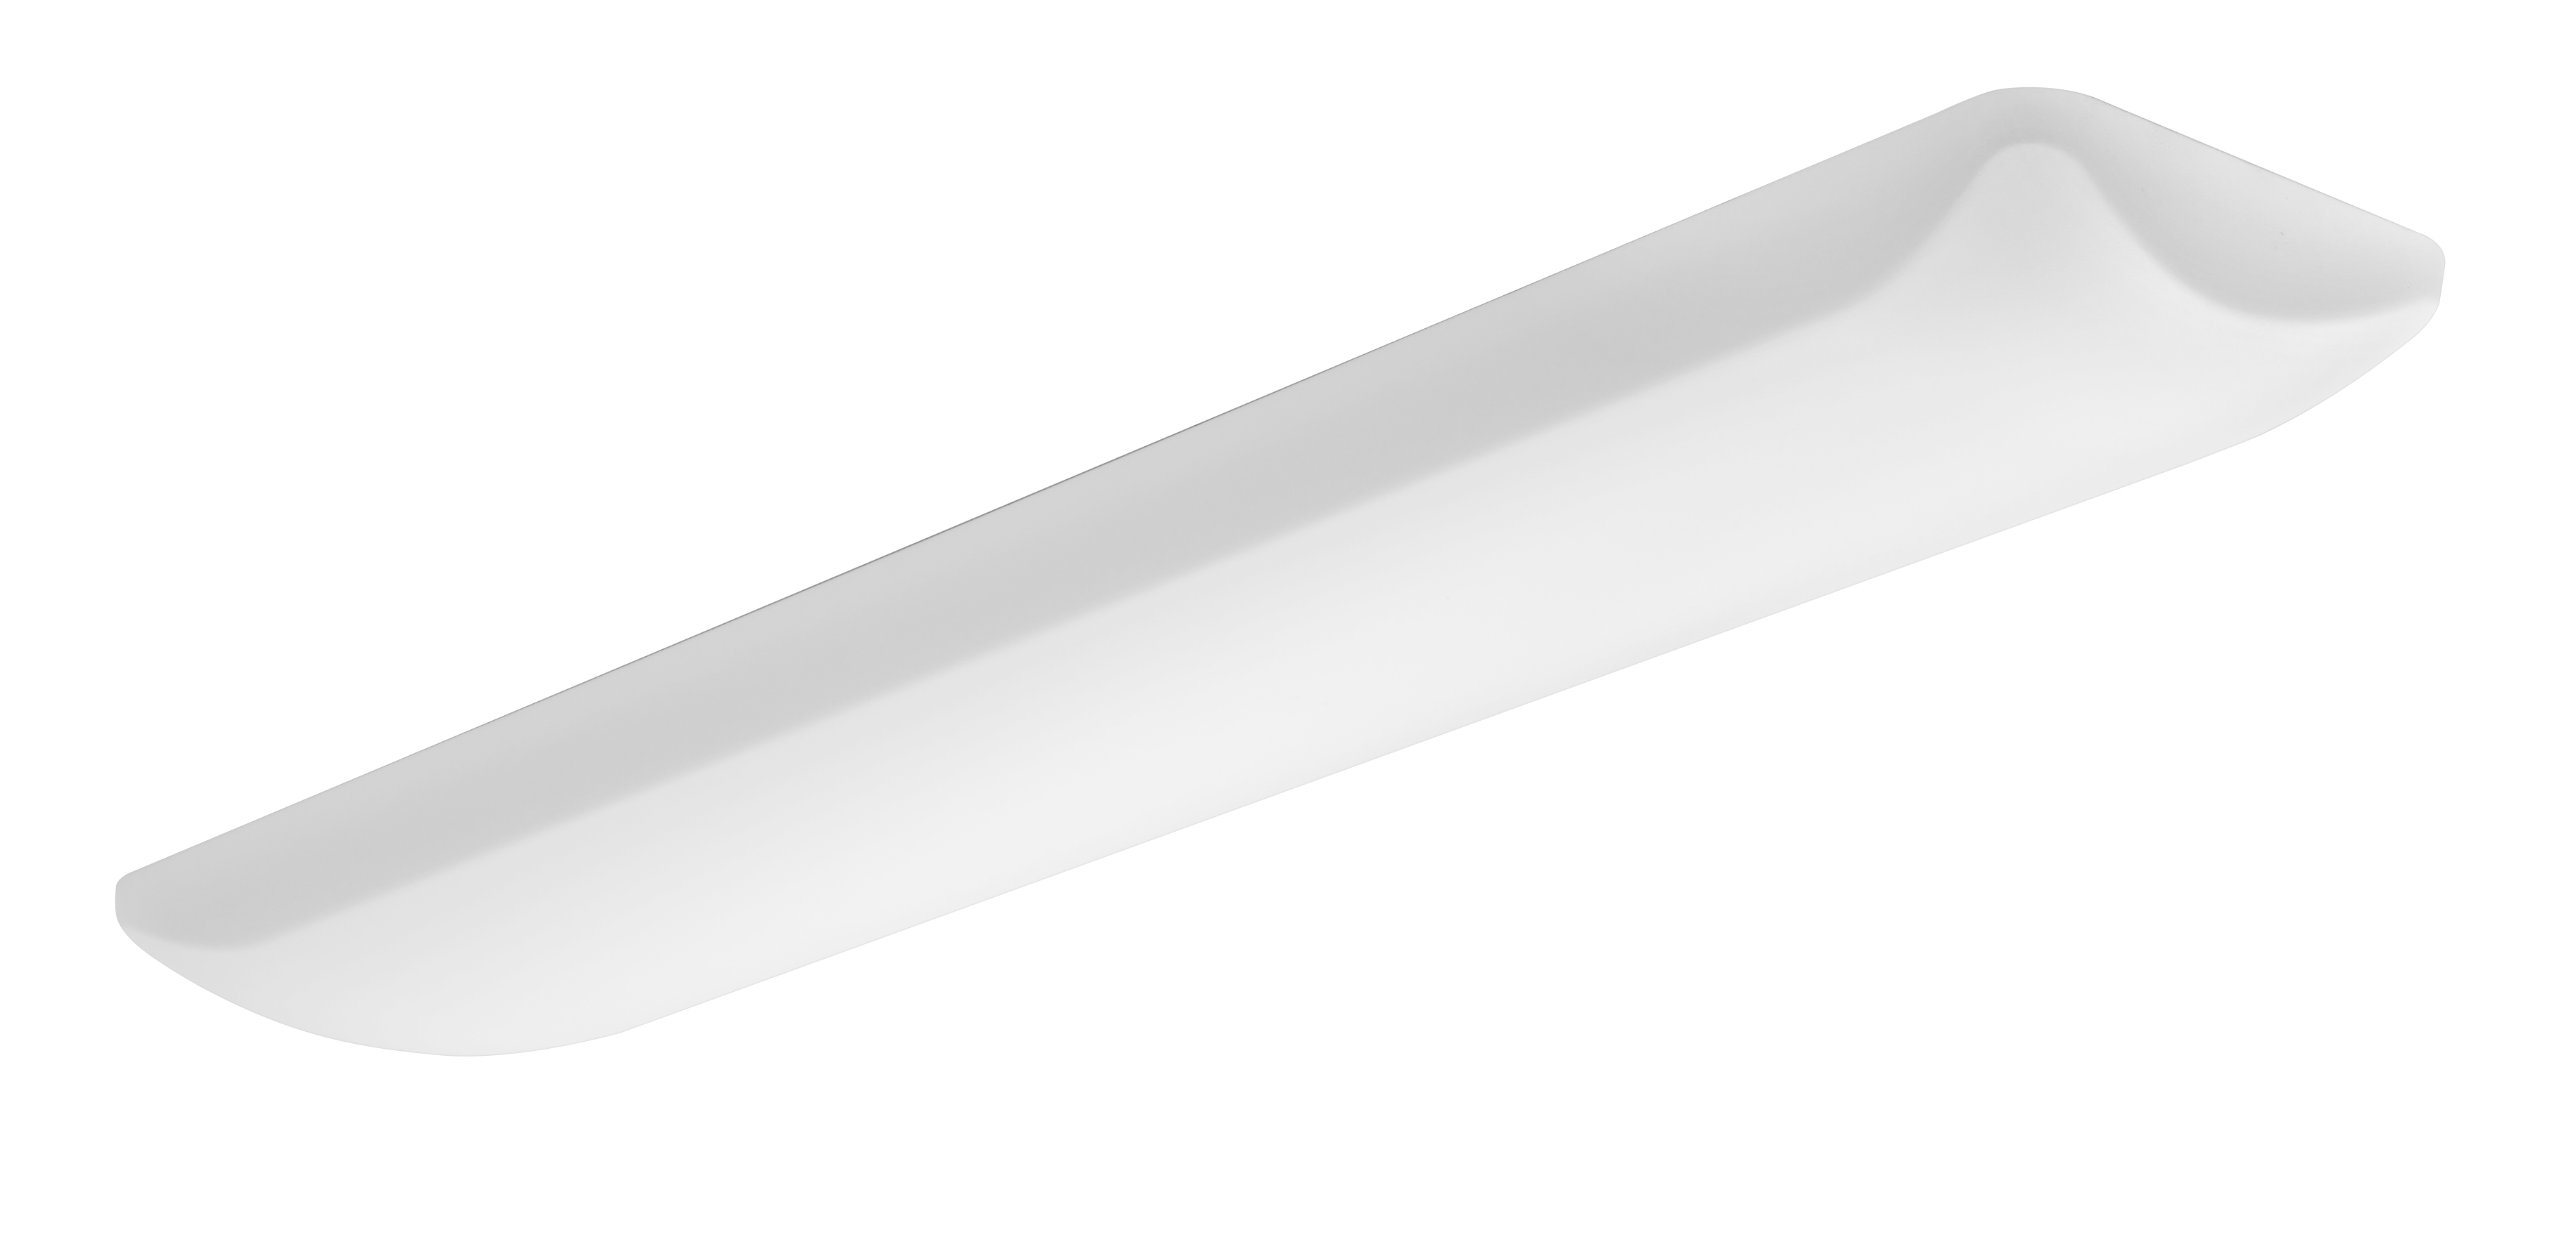 Lithonia Lighting FMLL 9 30840  4-Feet 4000K LED Low Profile Lightpuff with White Acrylic Diffuser by Lithonia Lighting